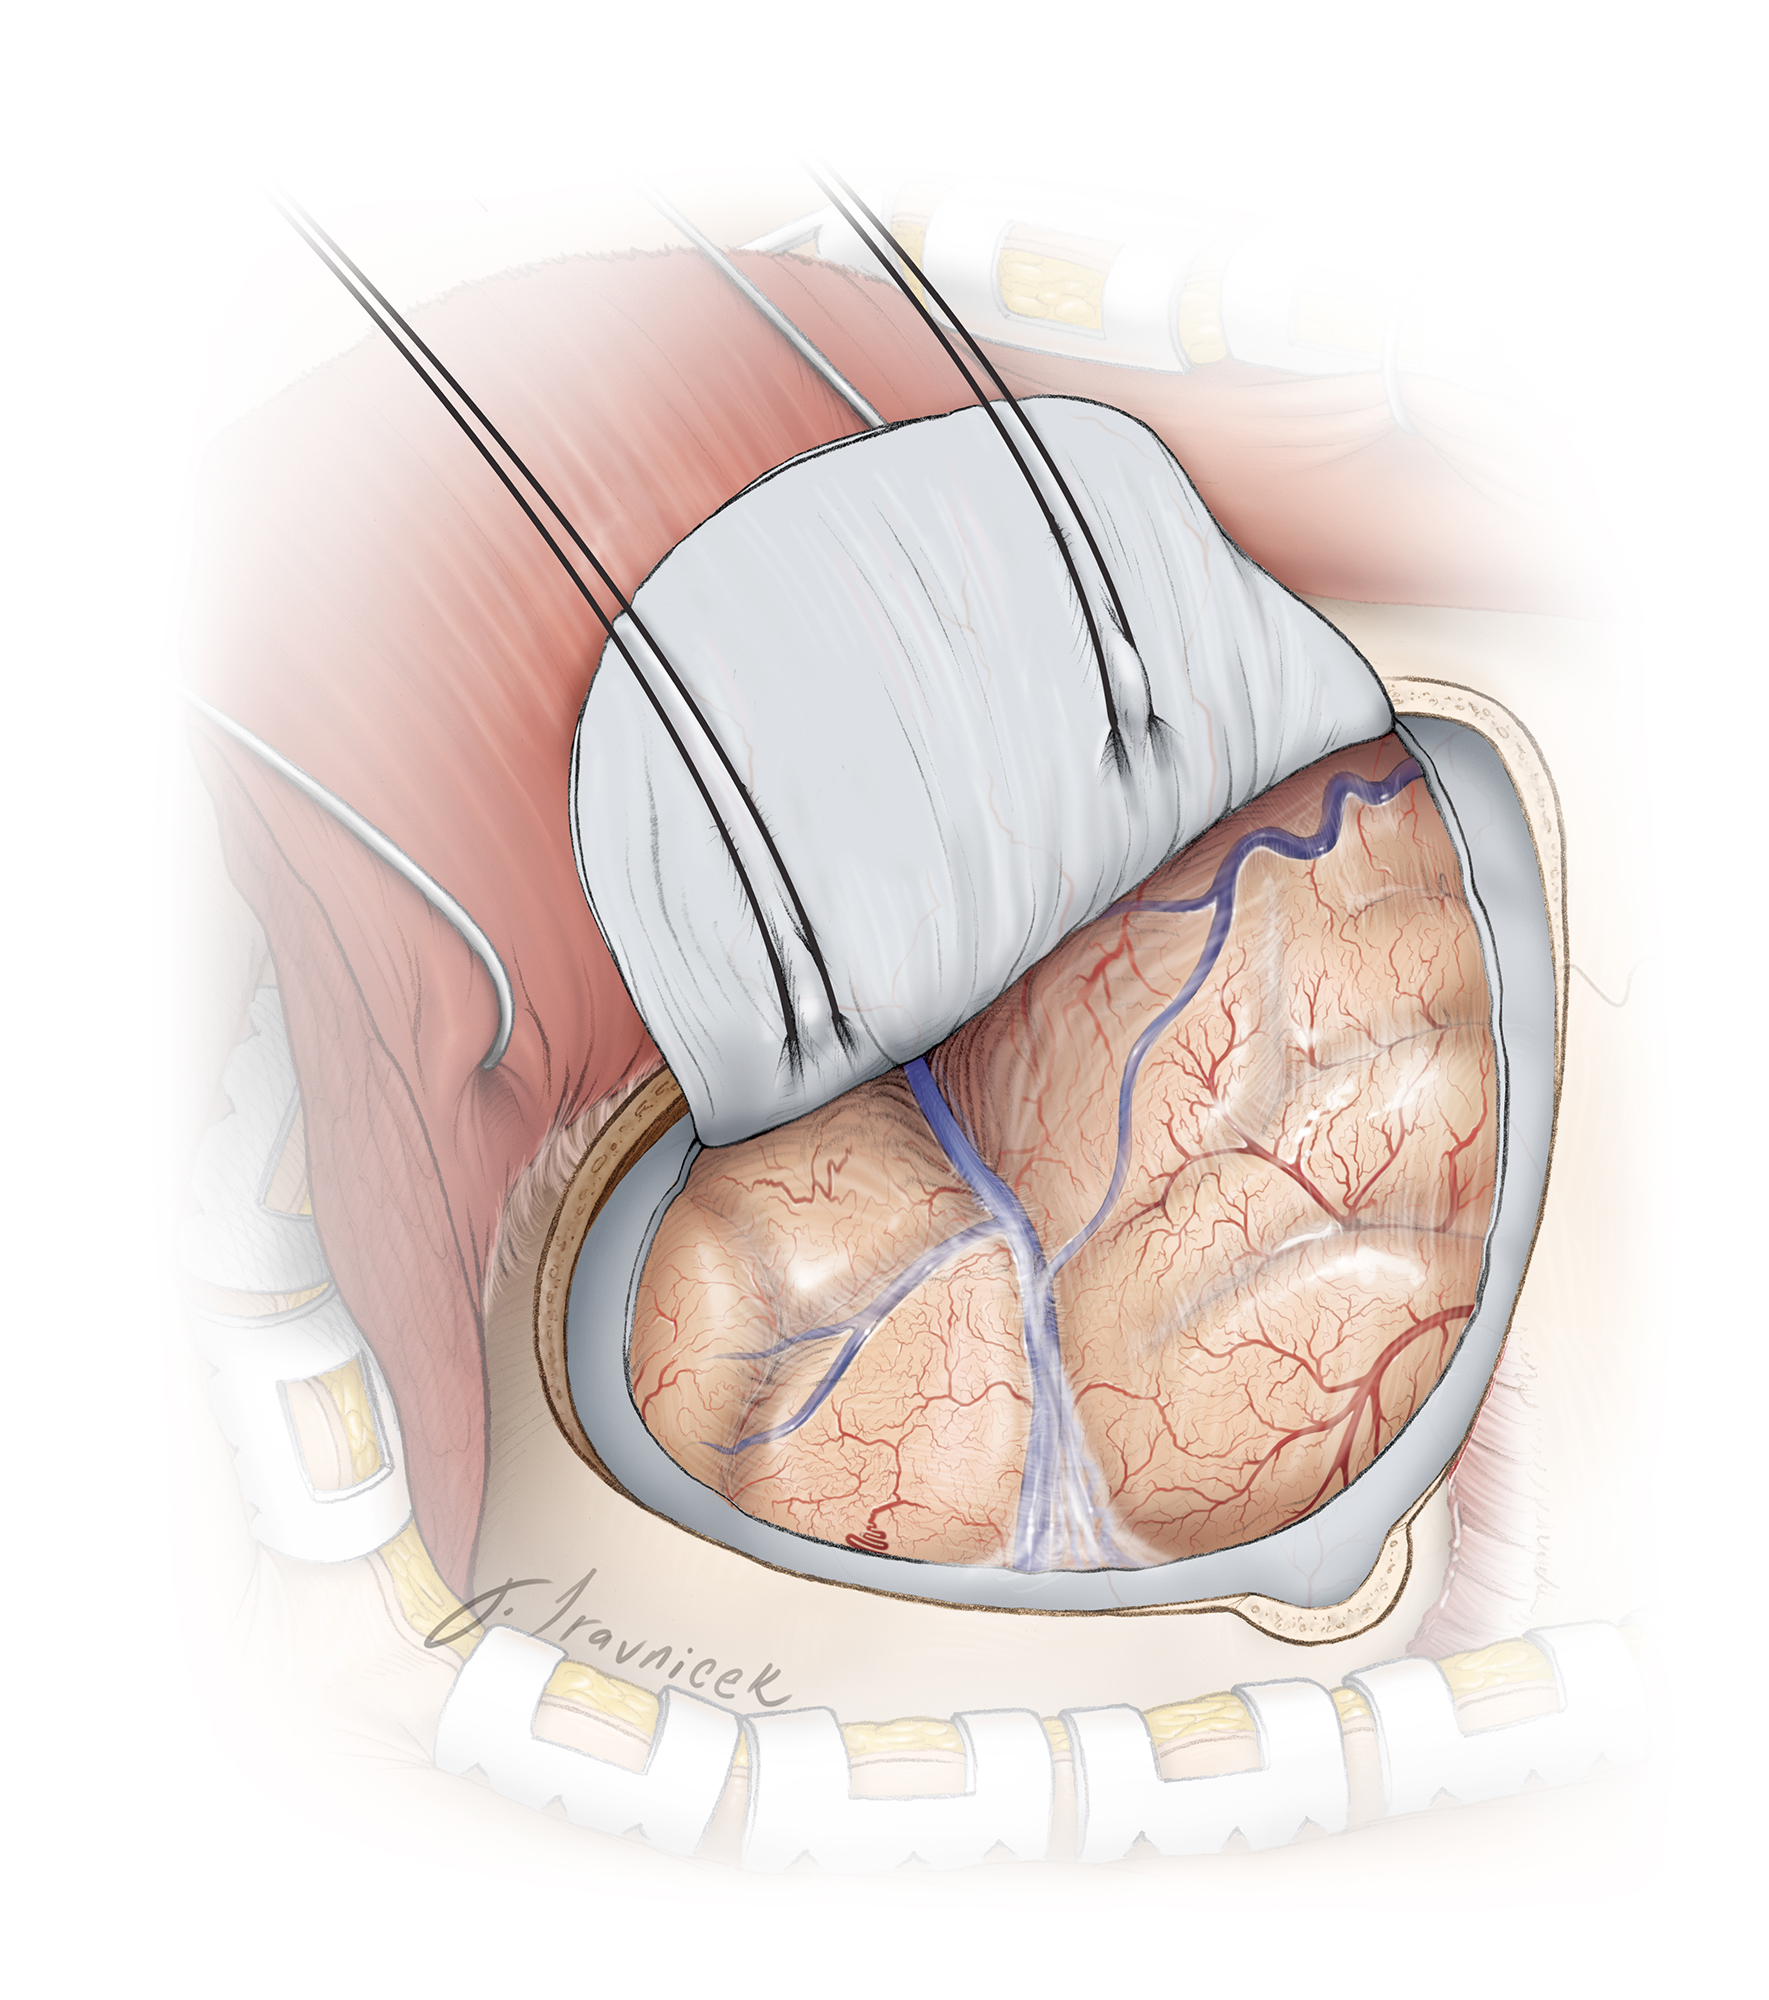 Figure 5: The initial intradural exposure is illustrated. Adequate sphenoid wing removal is evident when the dura can be mobilized flat over the orbital roof and along the anterior edge of the craniotomy.